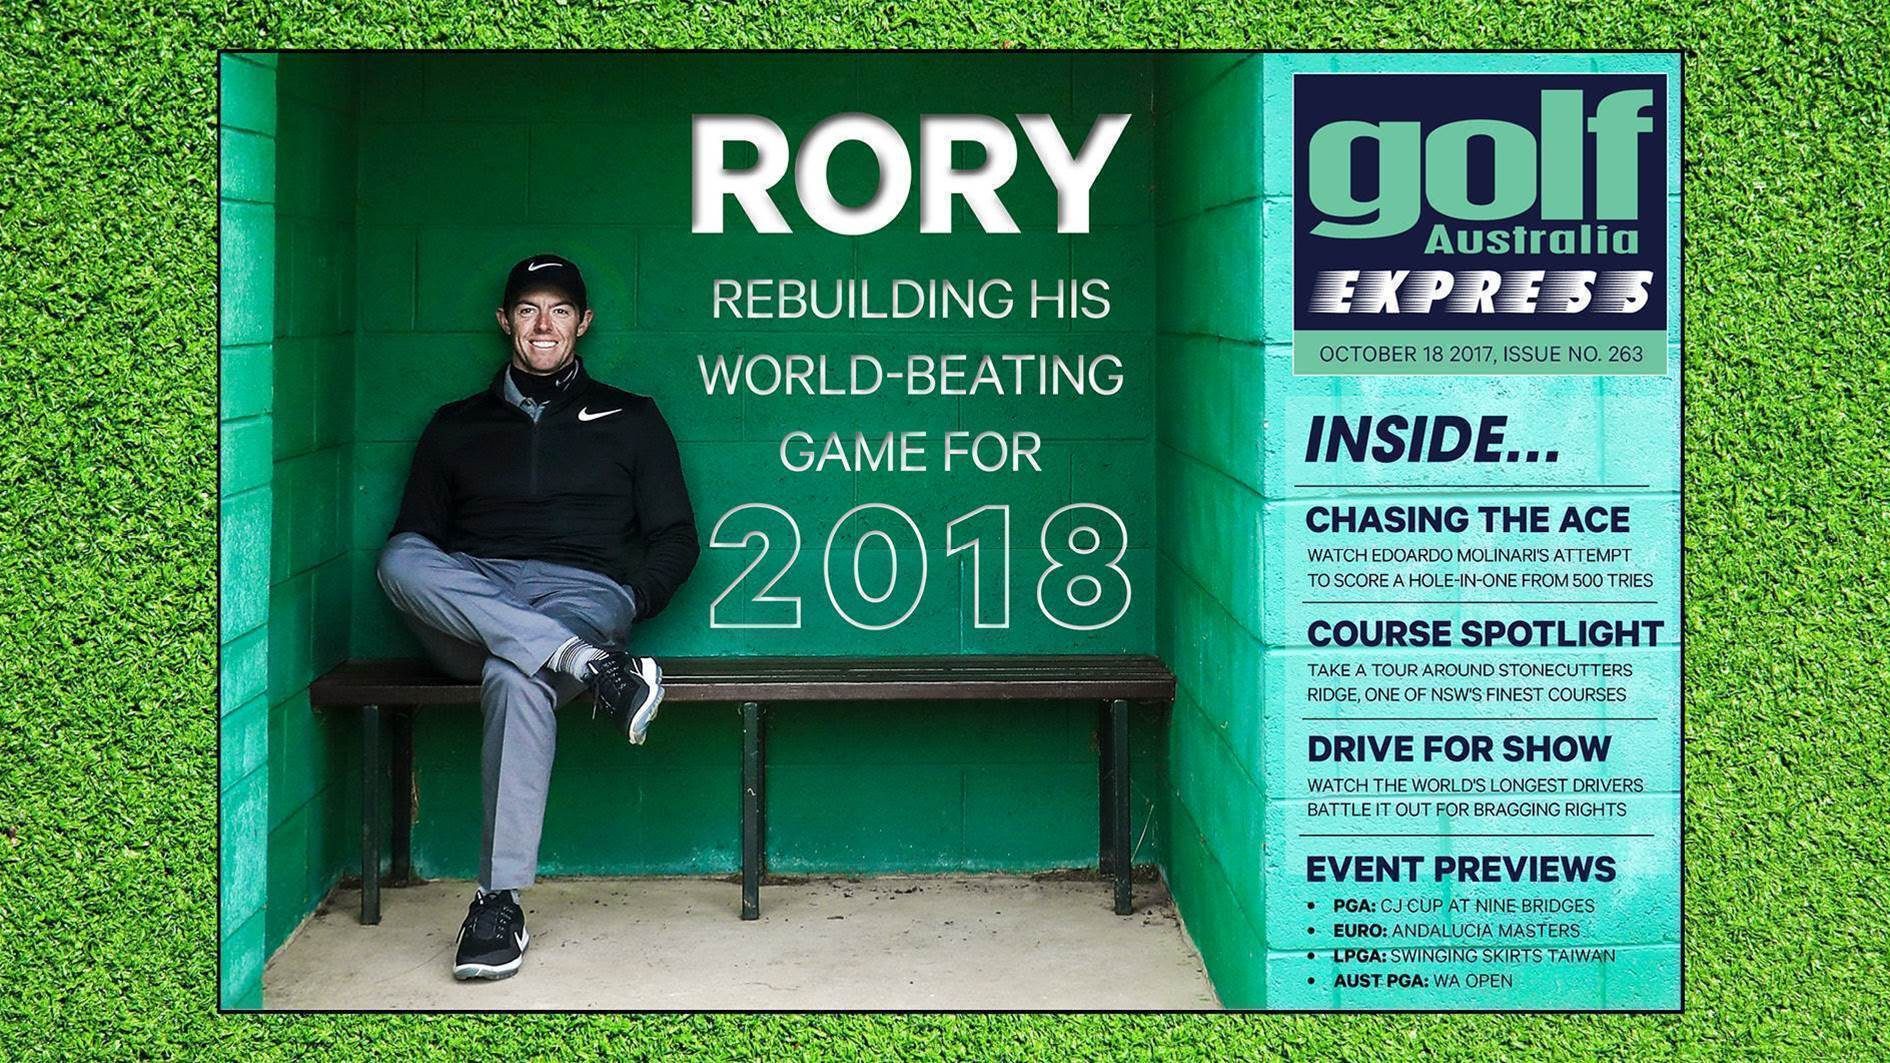 GA Express #263: The Rory Rebuild